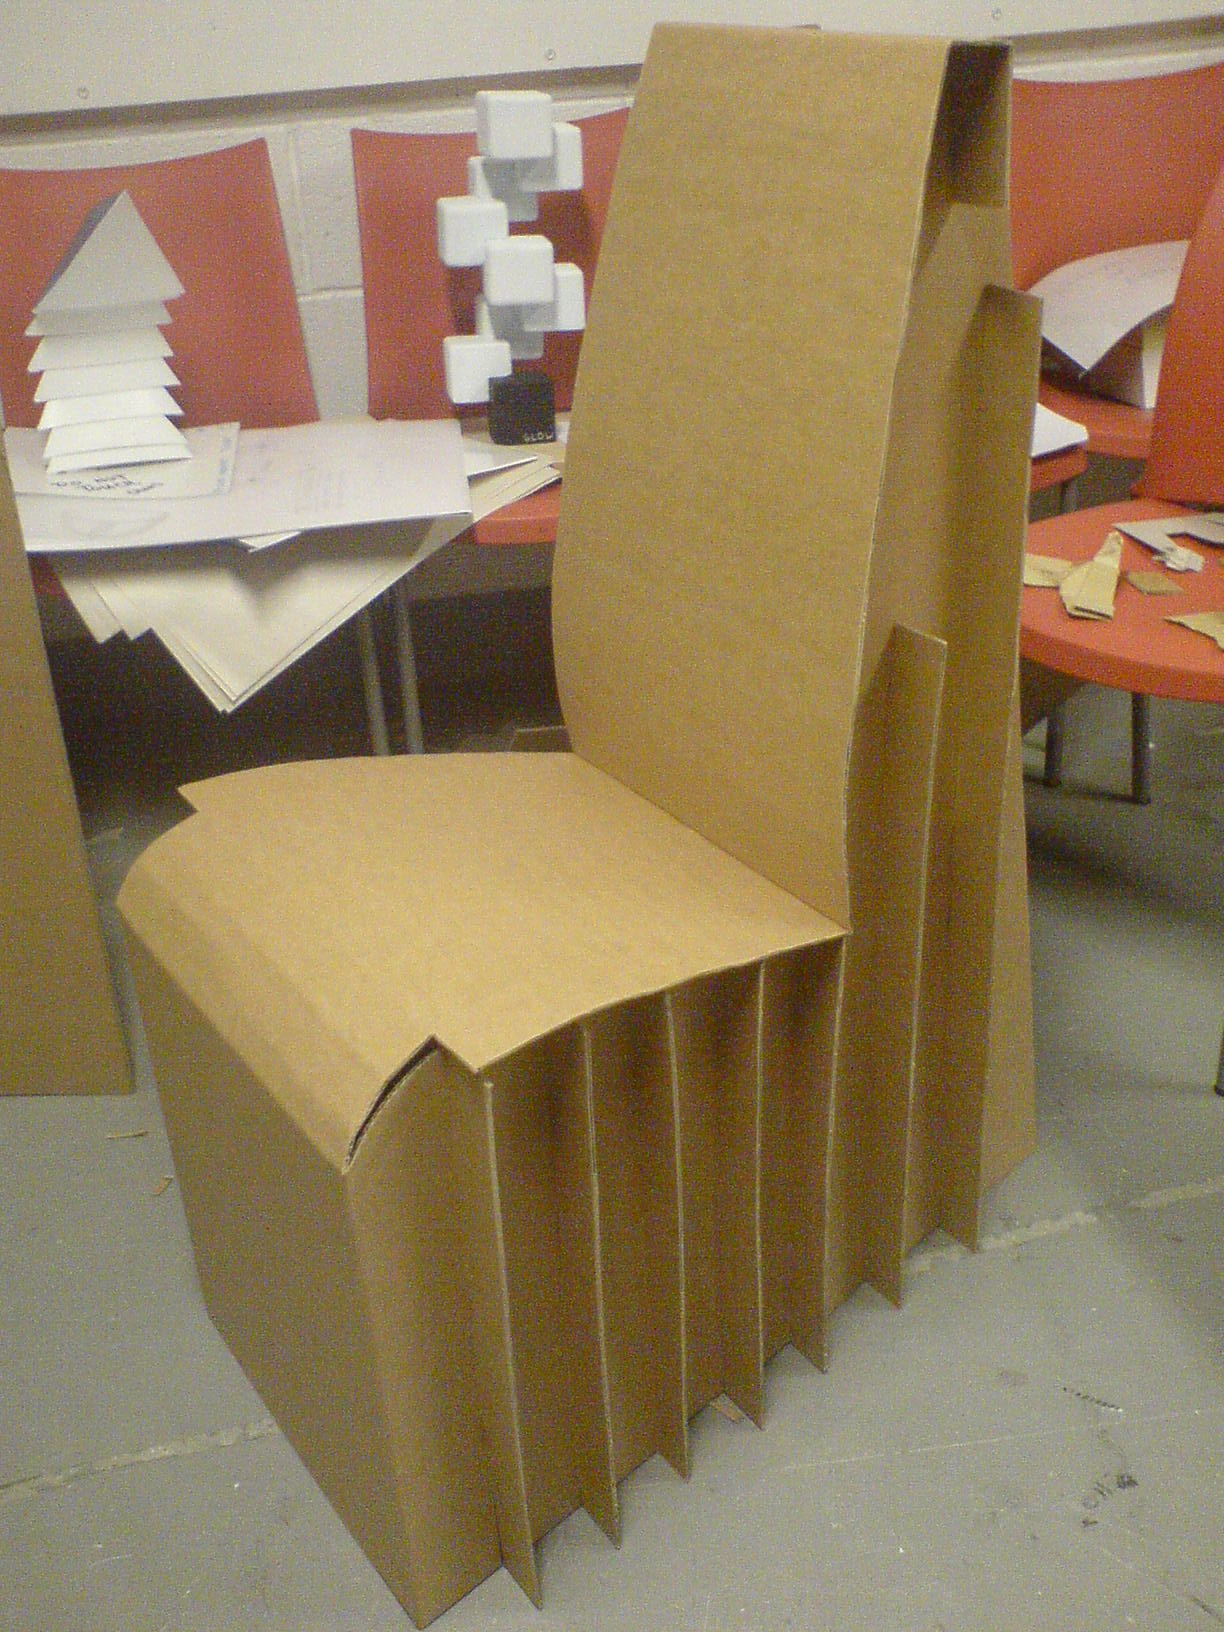 wheelchair project fisher price kids table and chairs cardboard chair by liam howard at coroflot